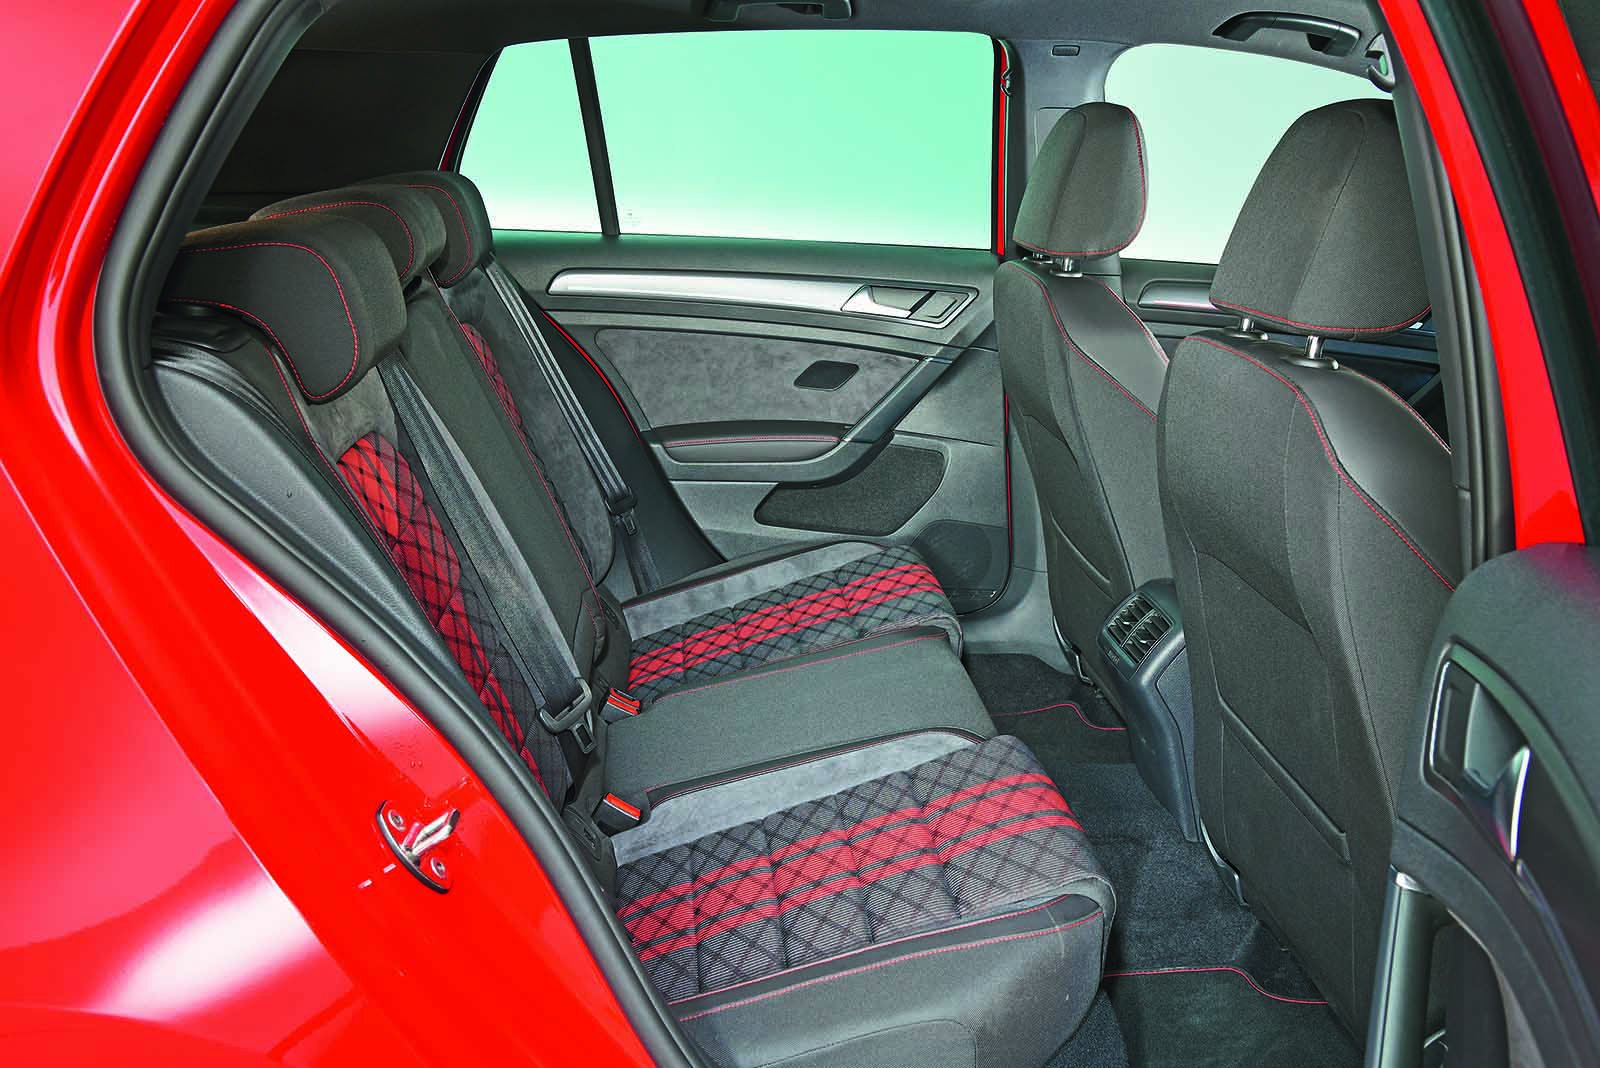 Volkswagen Golf Volkswagen Golf 2019 GTI rear seats